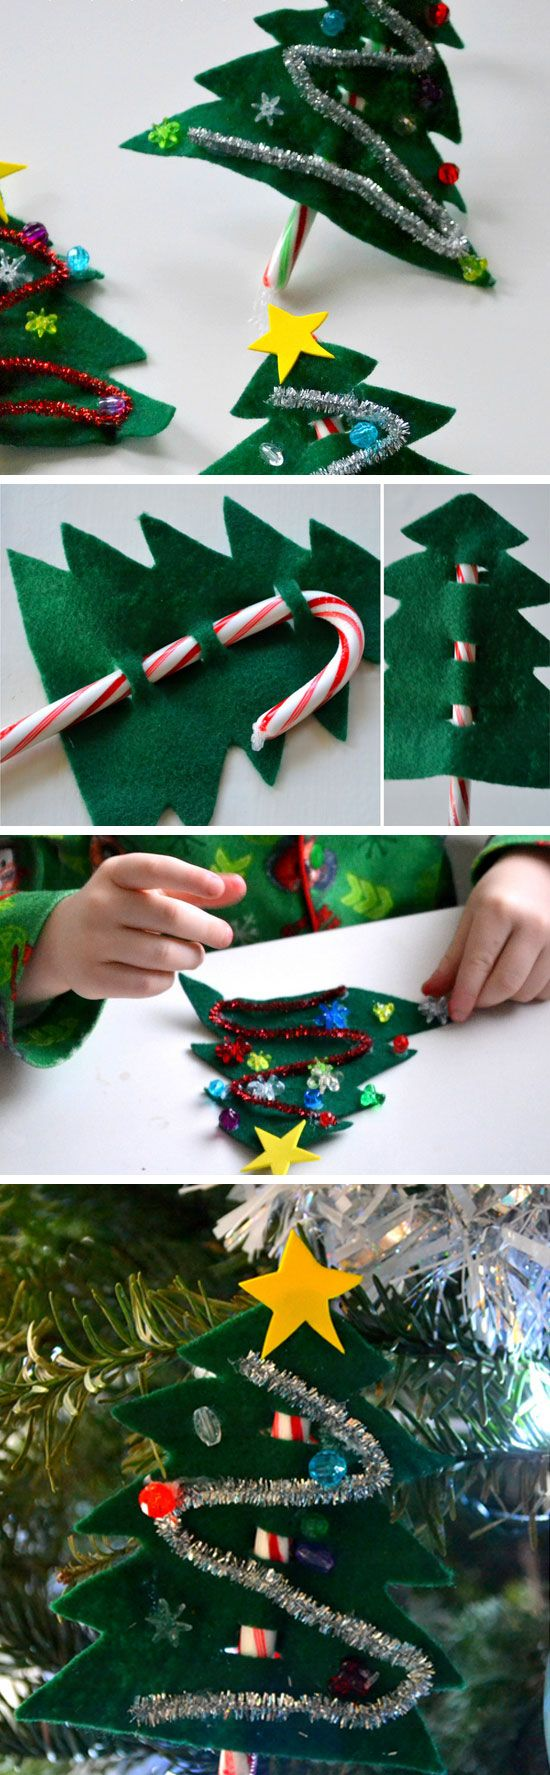 20 Easy Christmas Decor Ideas For Kids To Make